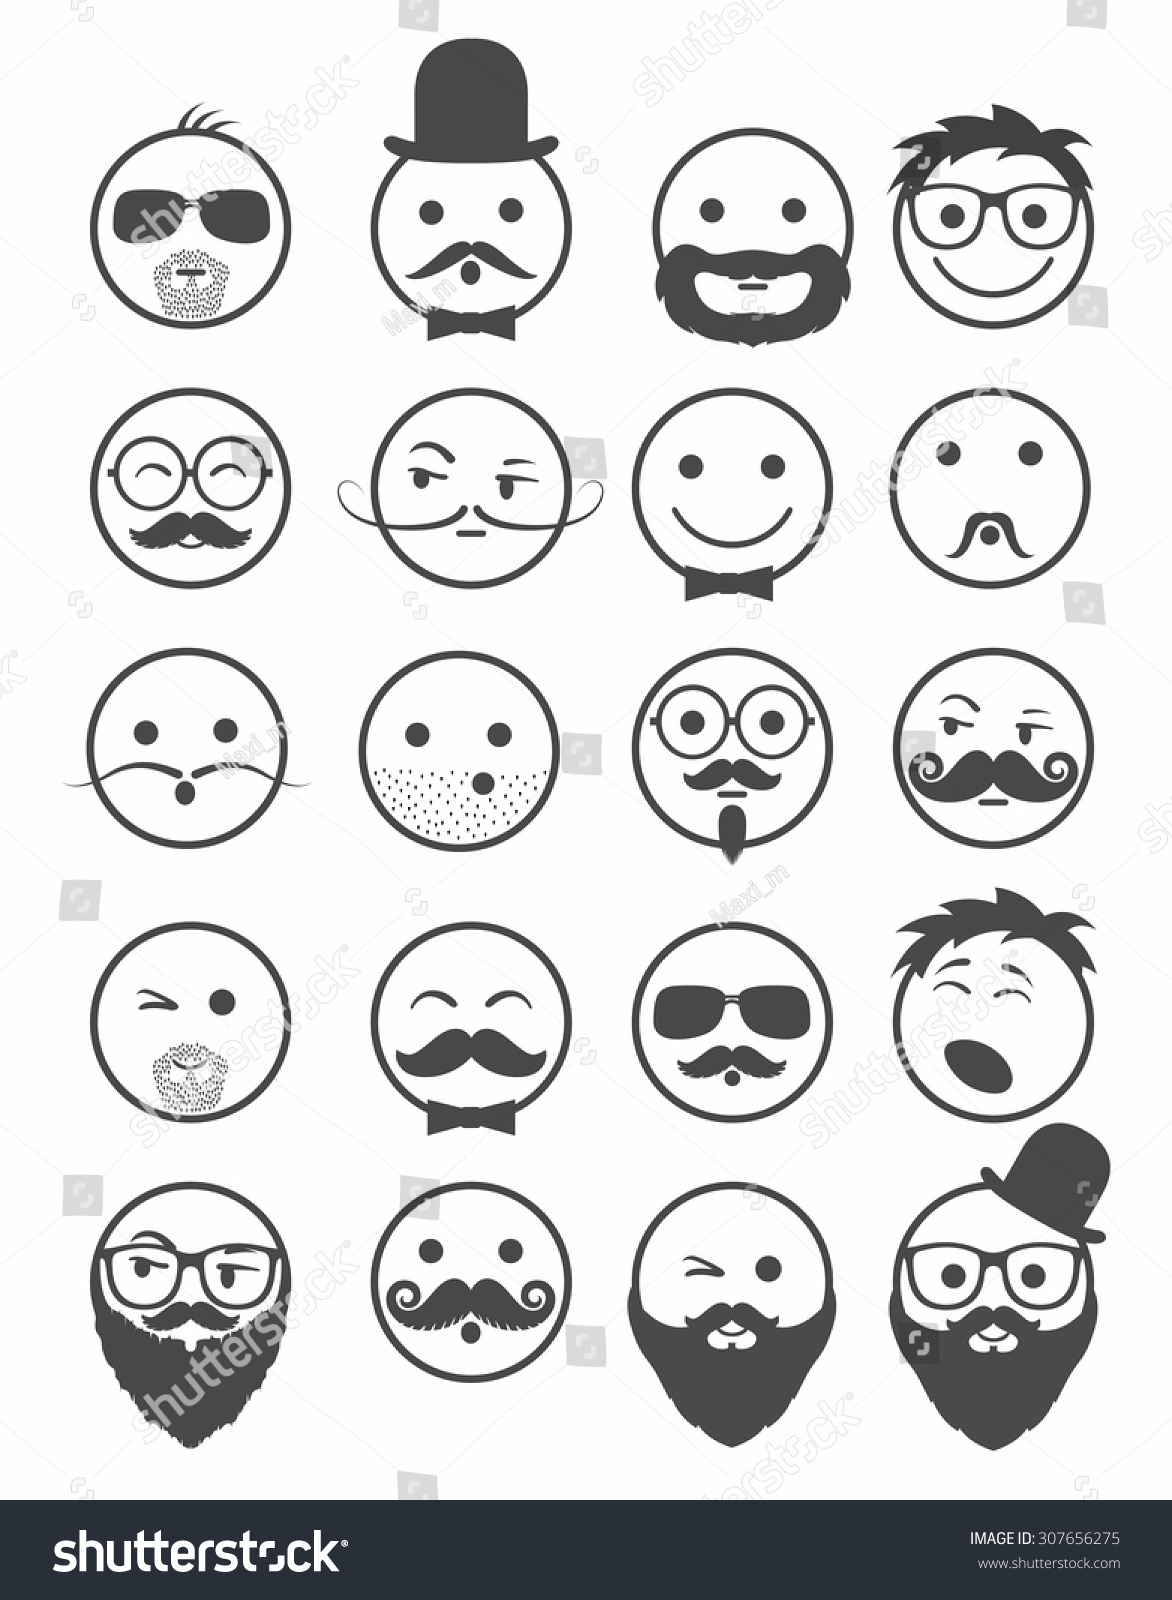 Icon Set 20 Mans Faces Mustache Stock Vector 307656275 - Shutterstock